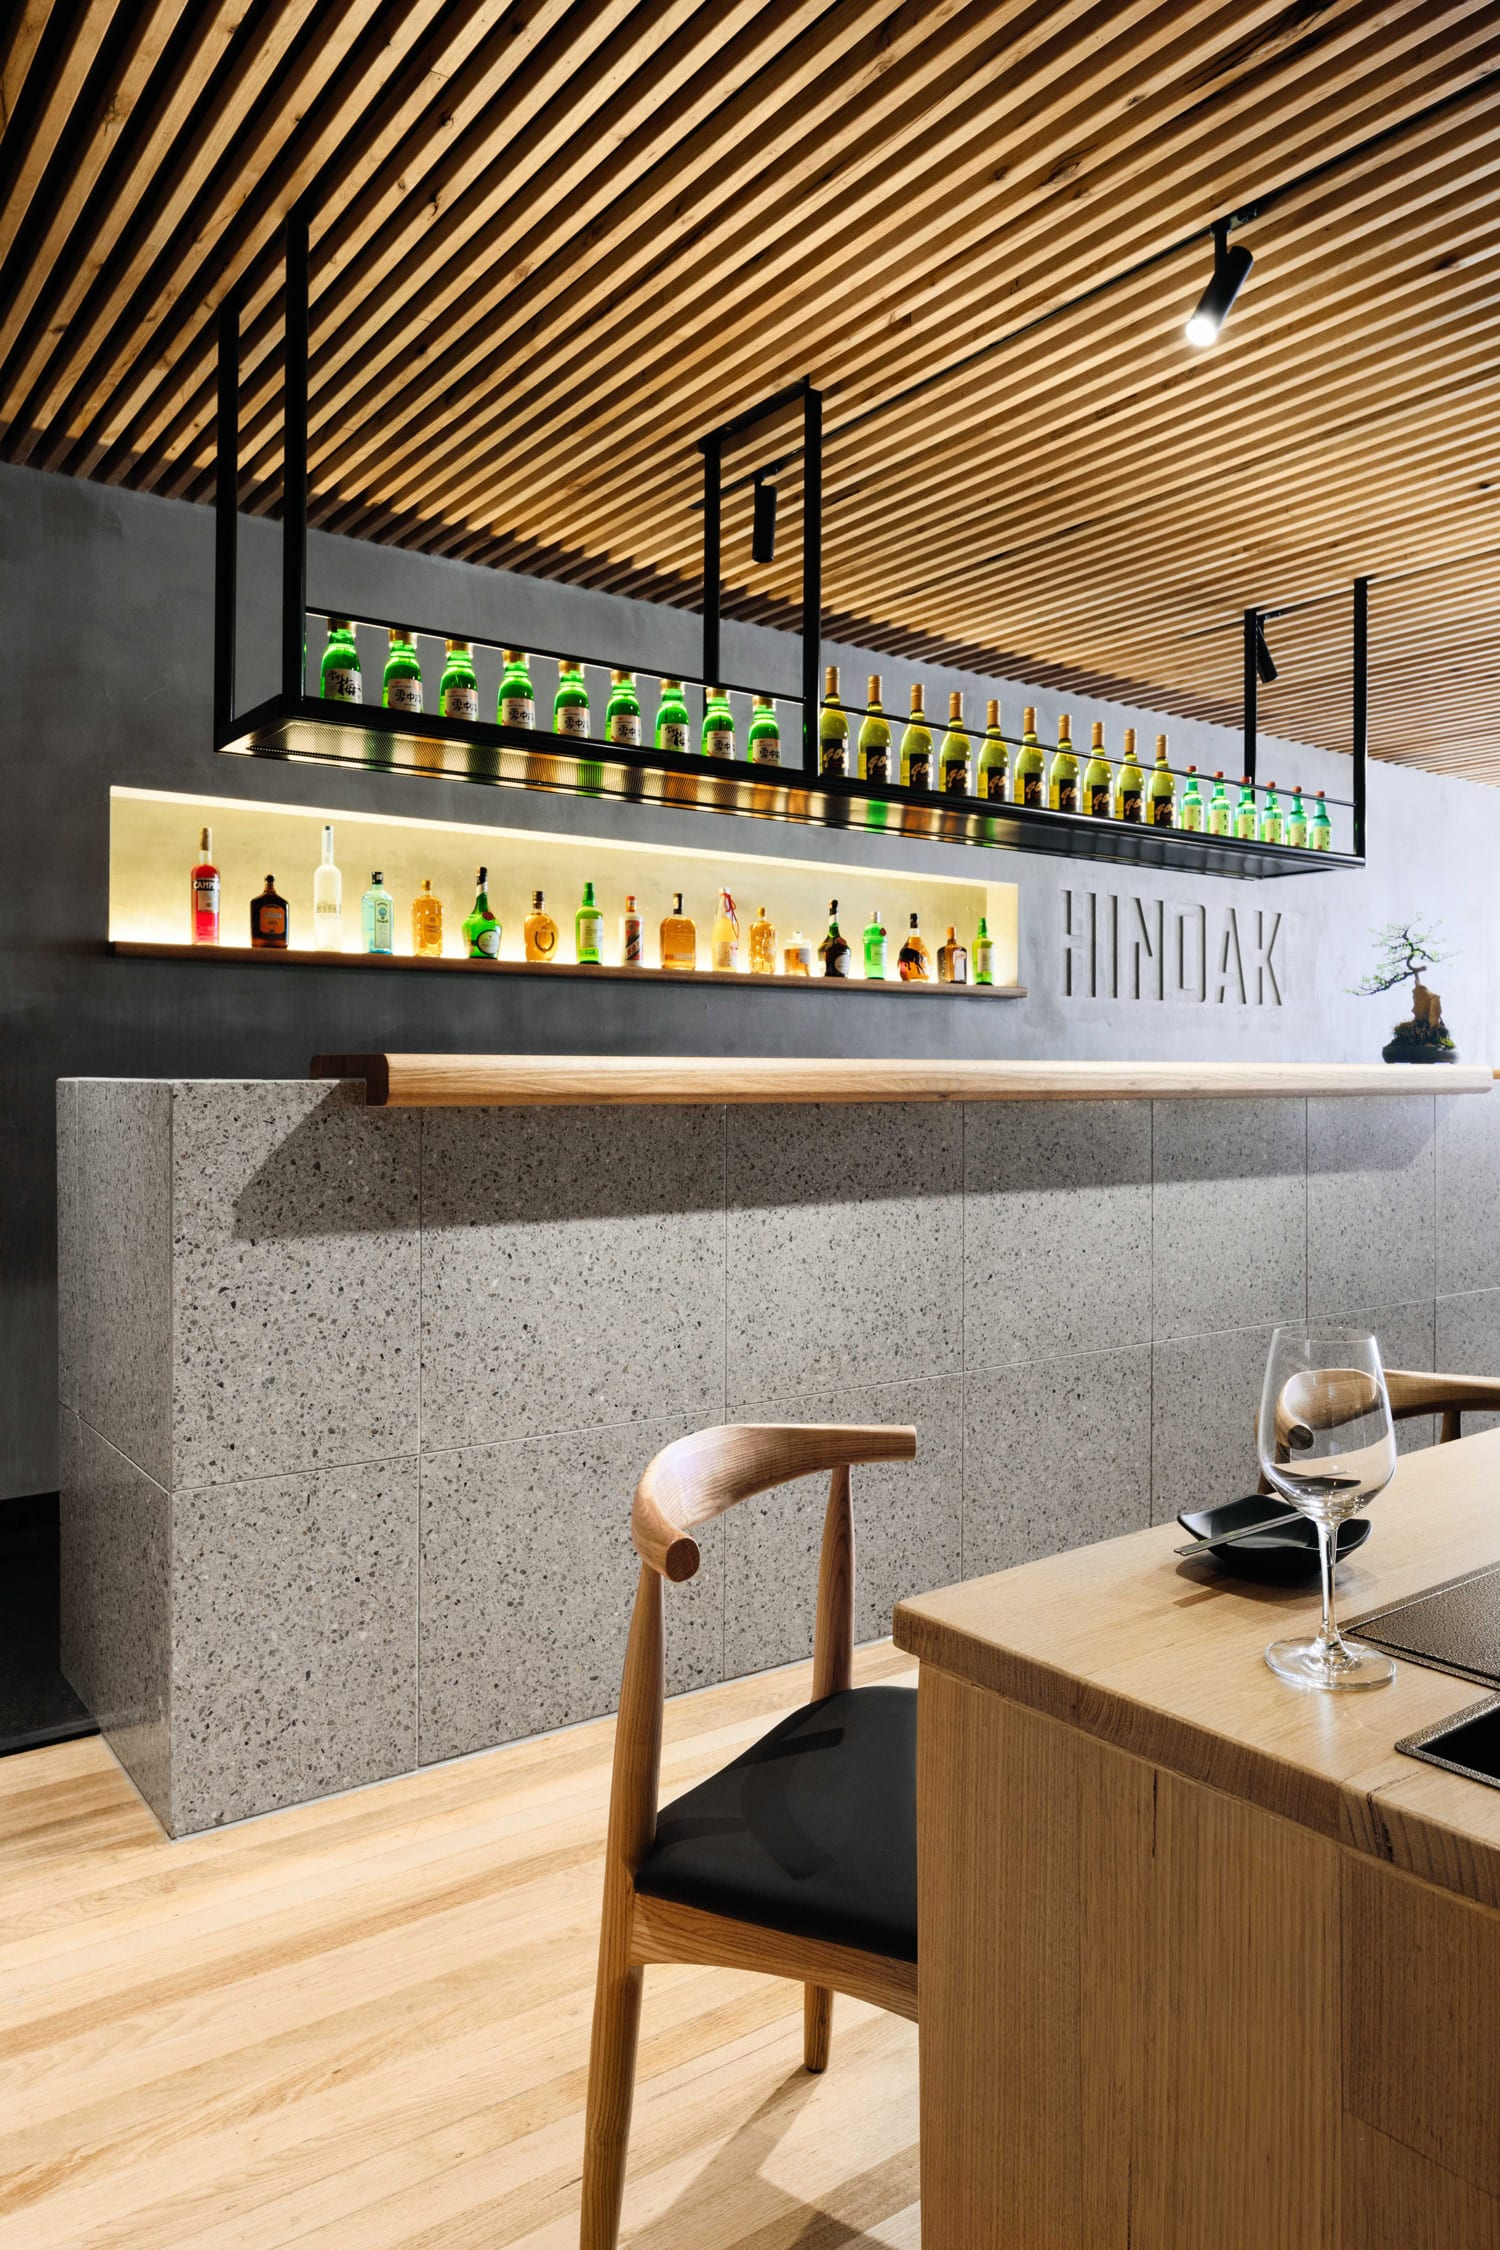 Hinoak korean barbecue house in melbourne by biasol for Housse barbecue